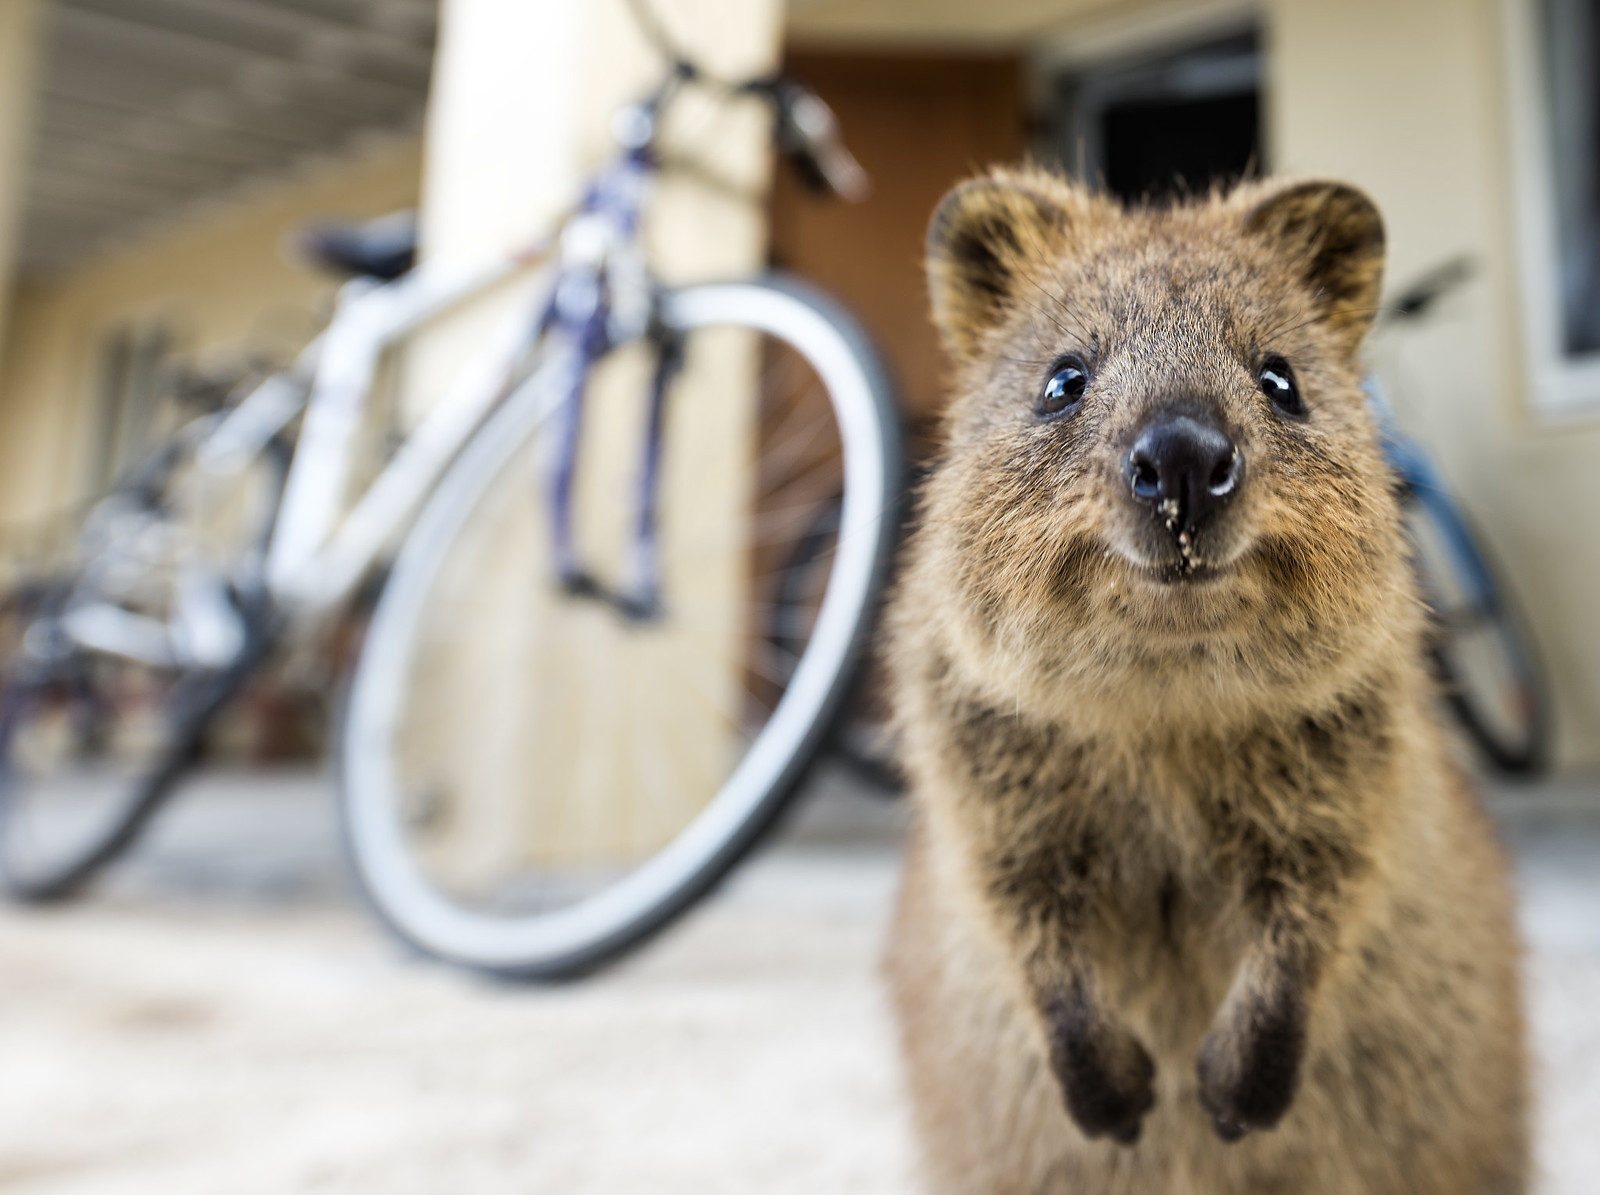 Baby quokka smiling - photo#22